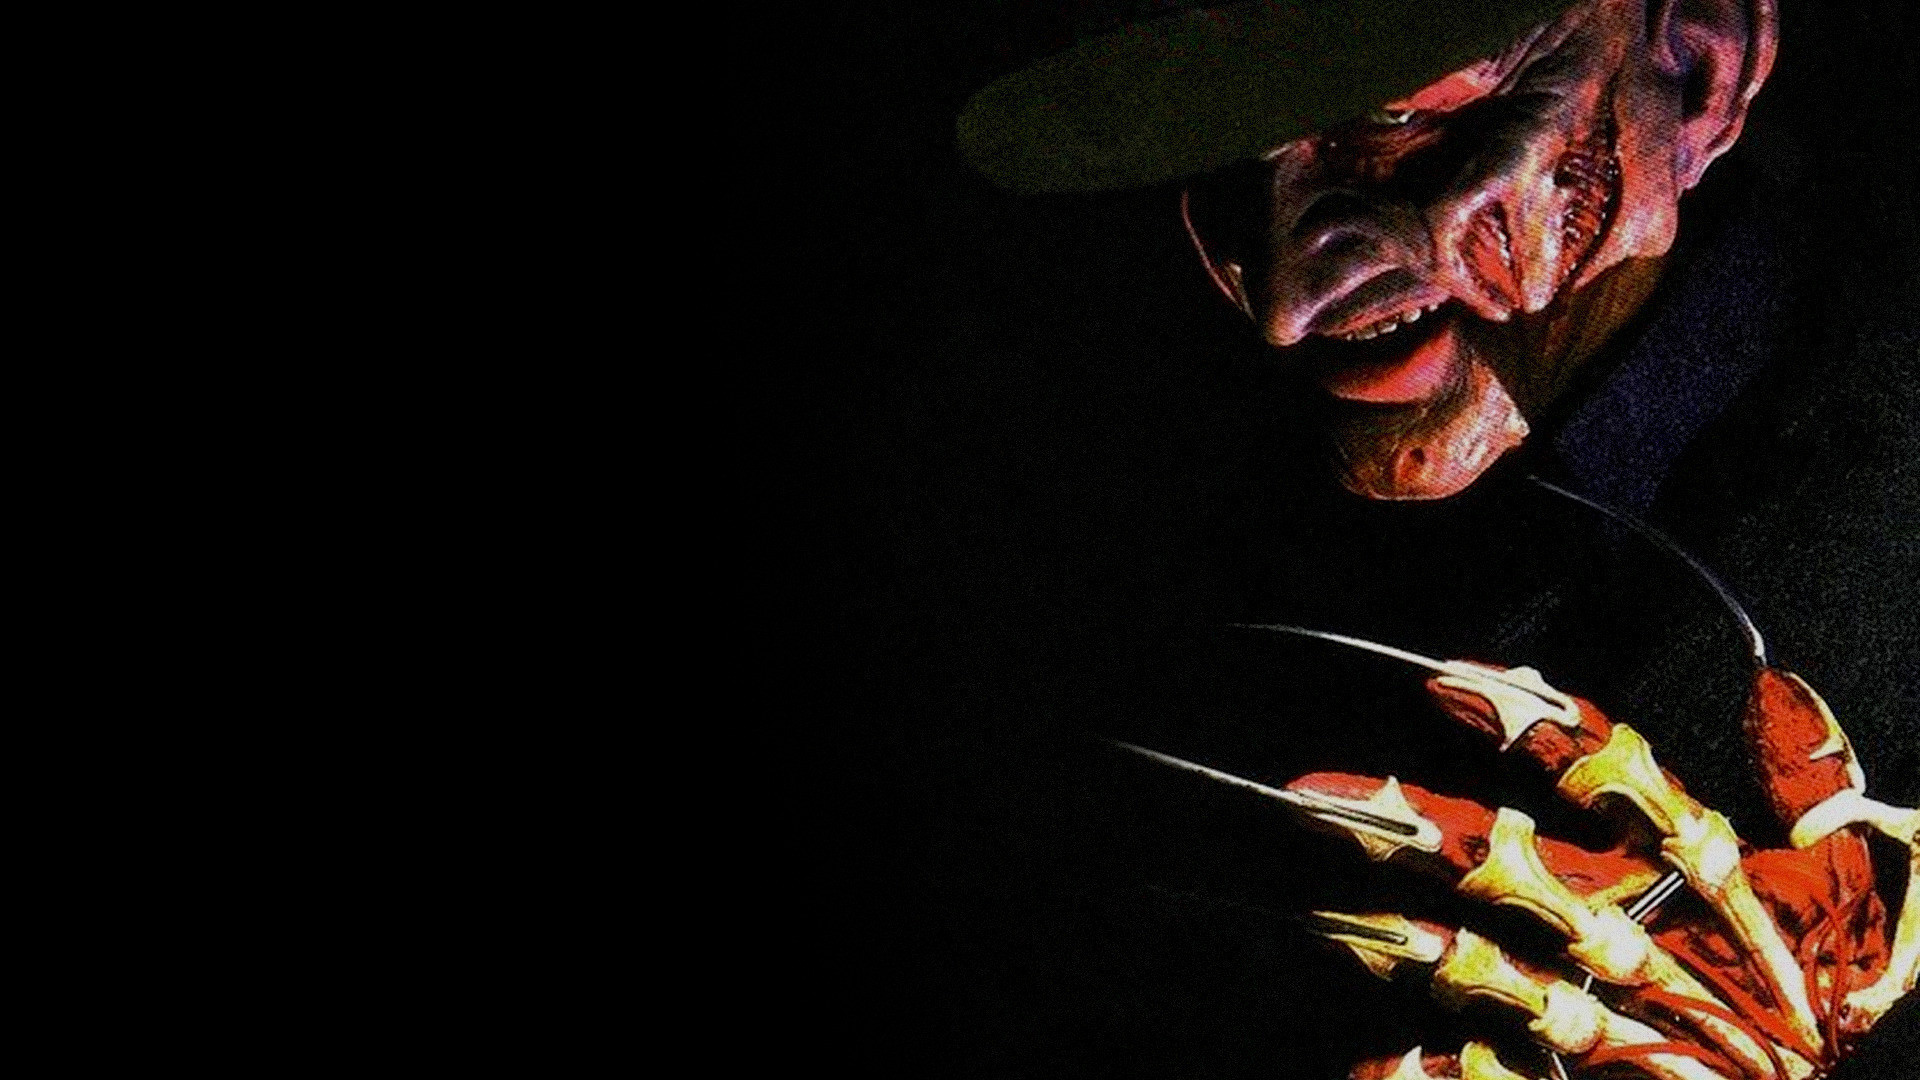 Freddy Krueger Wallpapers Images Photos Pictures Backgrounds